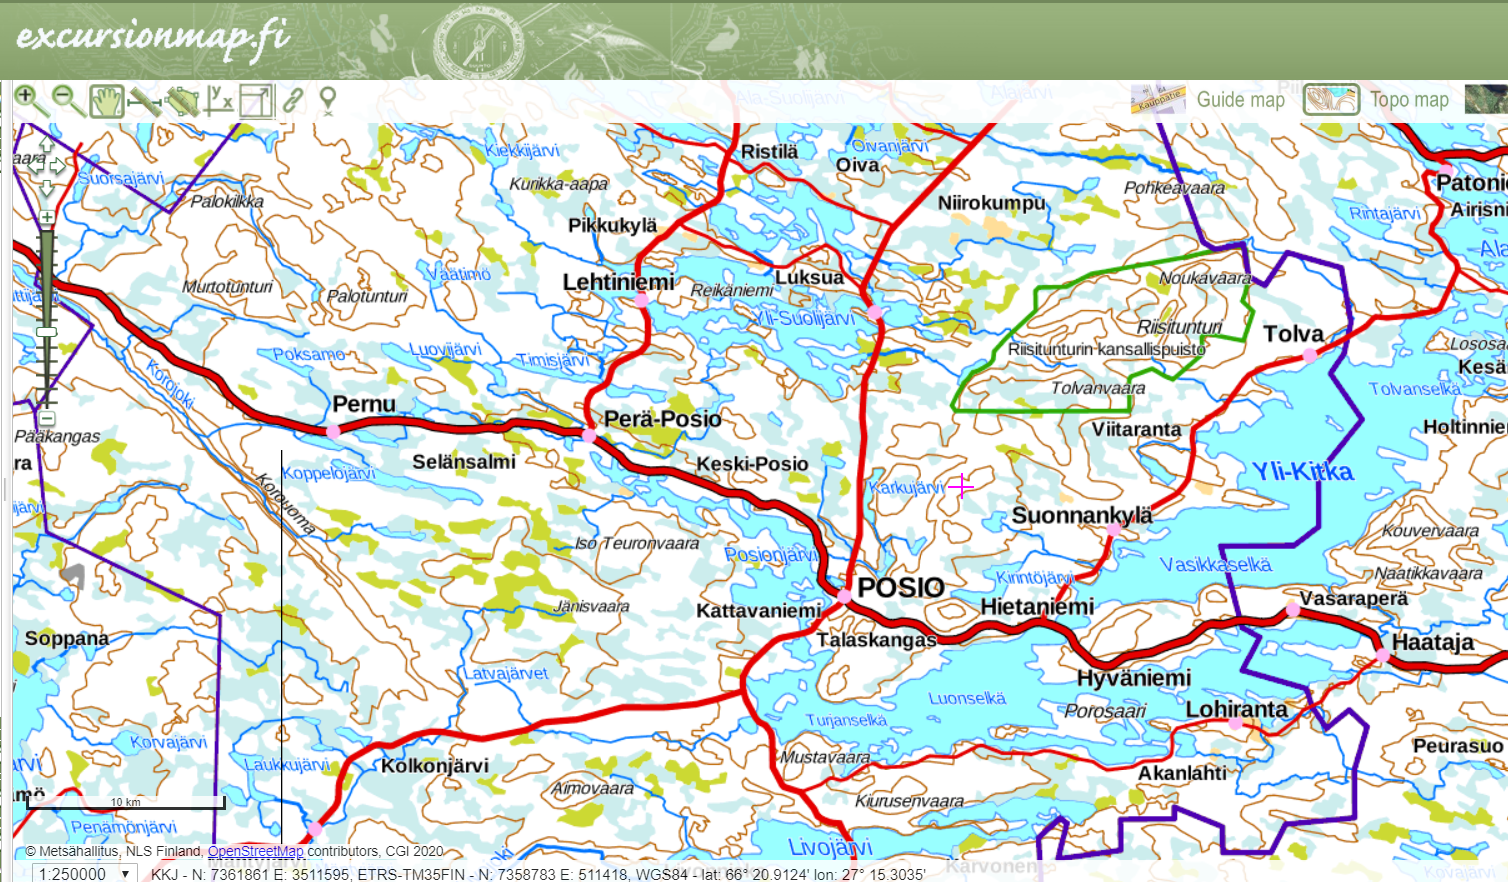 A screen shot from excursionmap-webservice, showing the area of Posio.